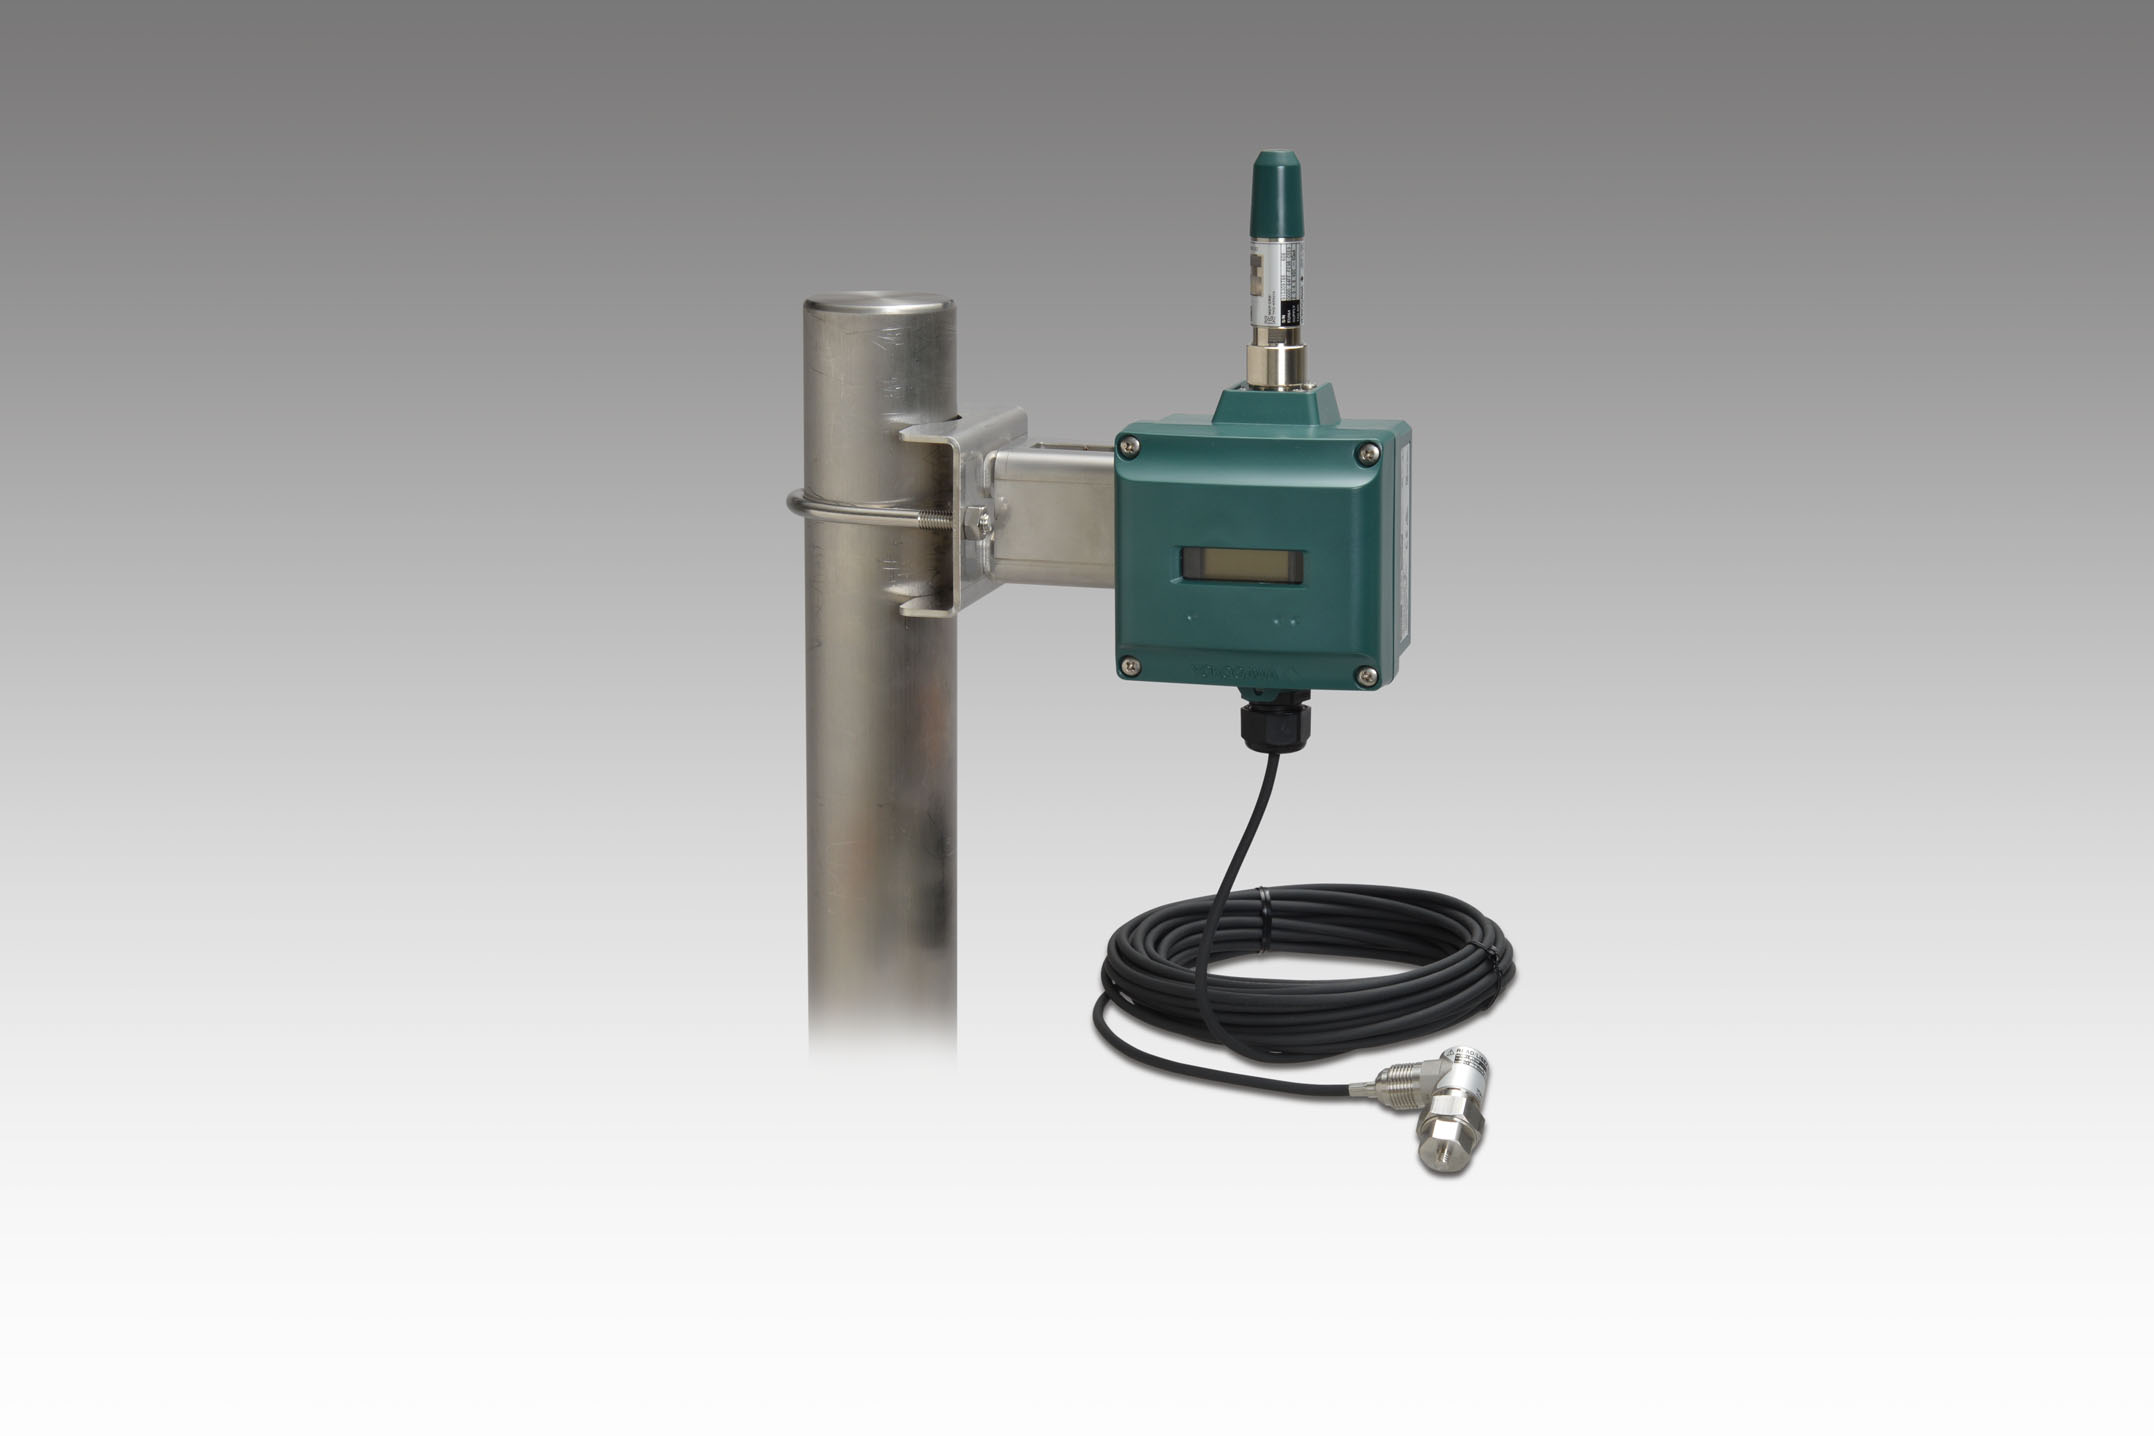 vibration sensors and their applications